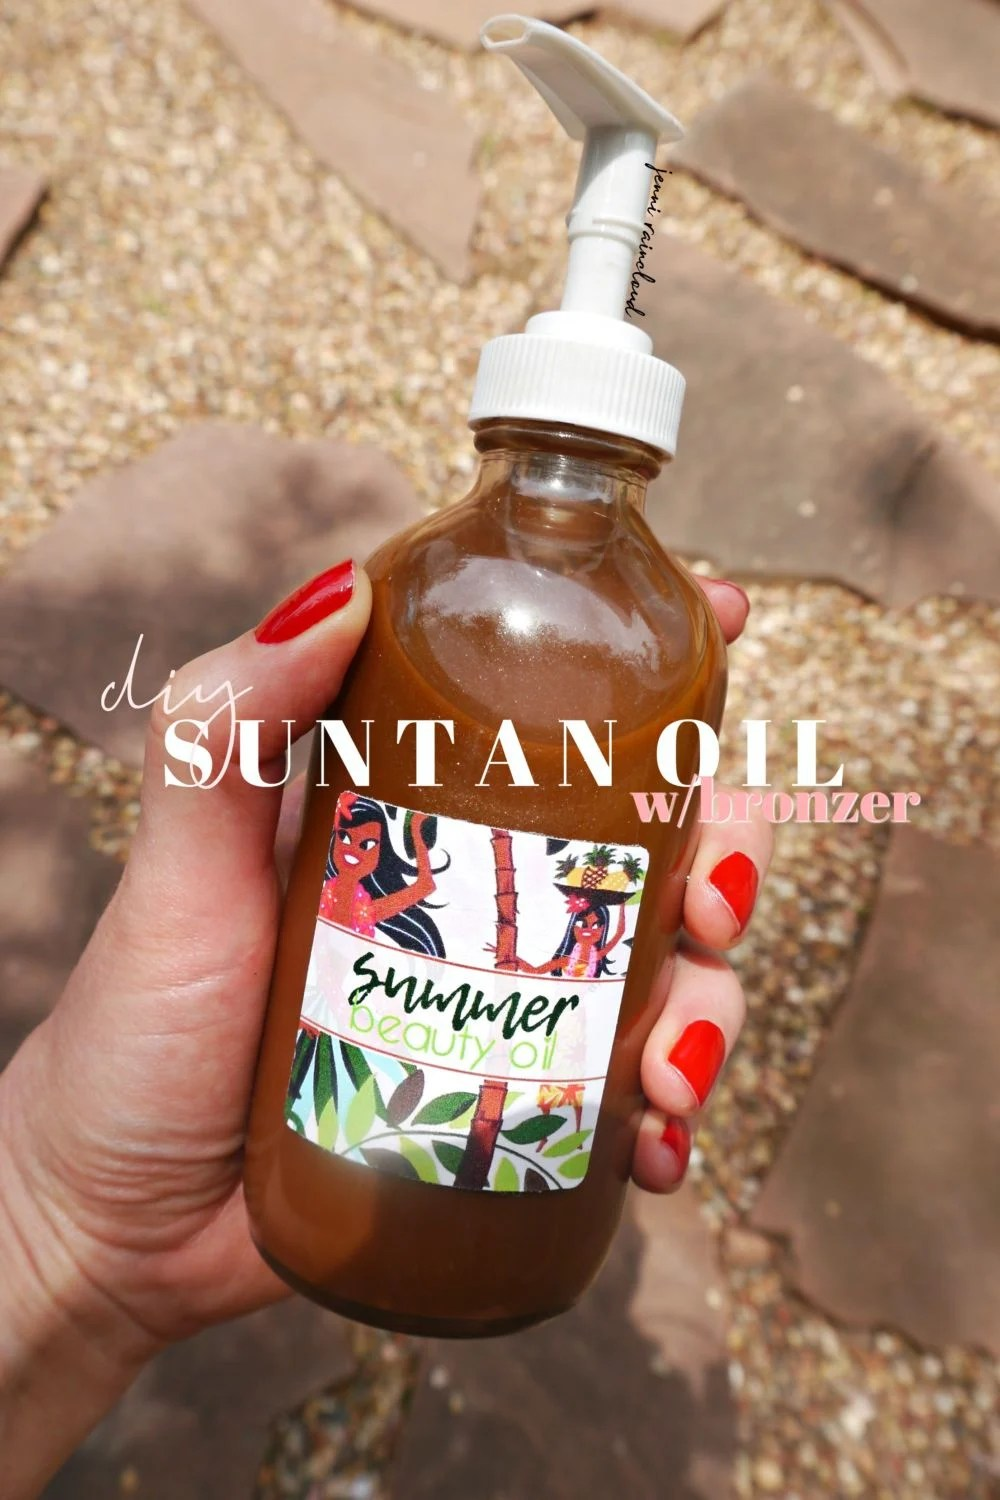 DIY Suntan Oil with bronzer